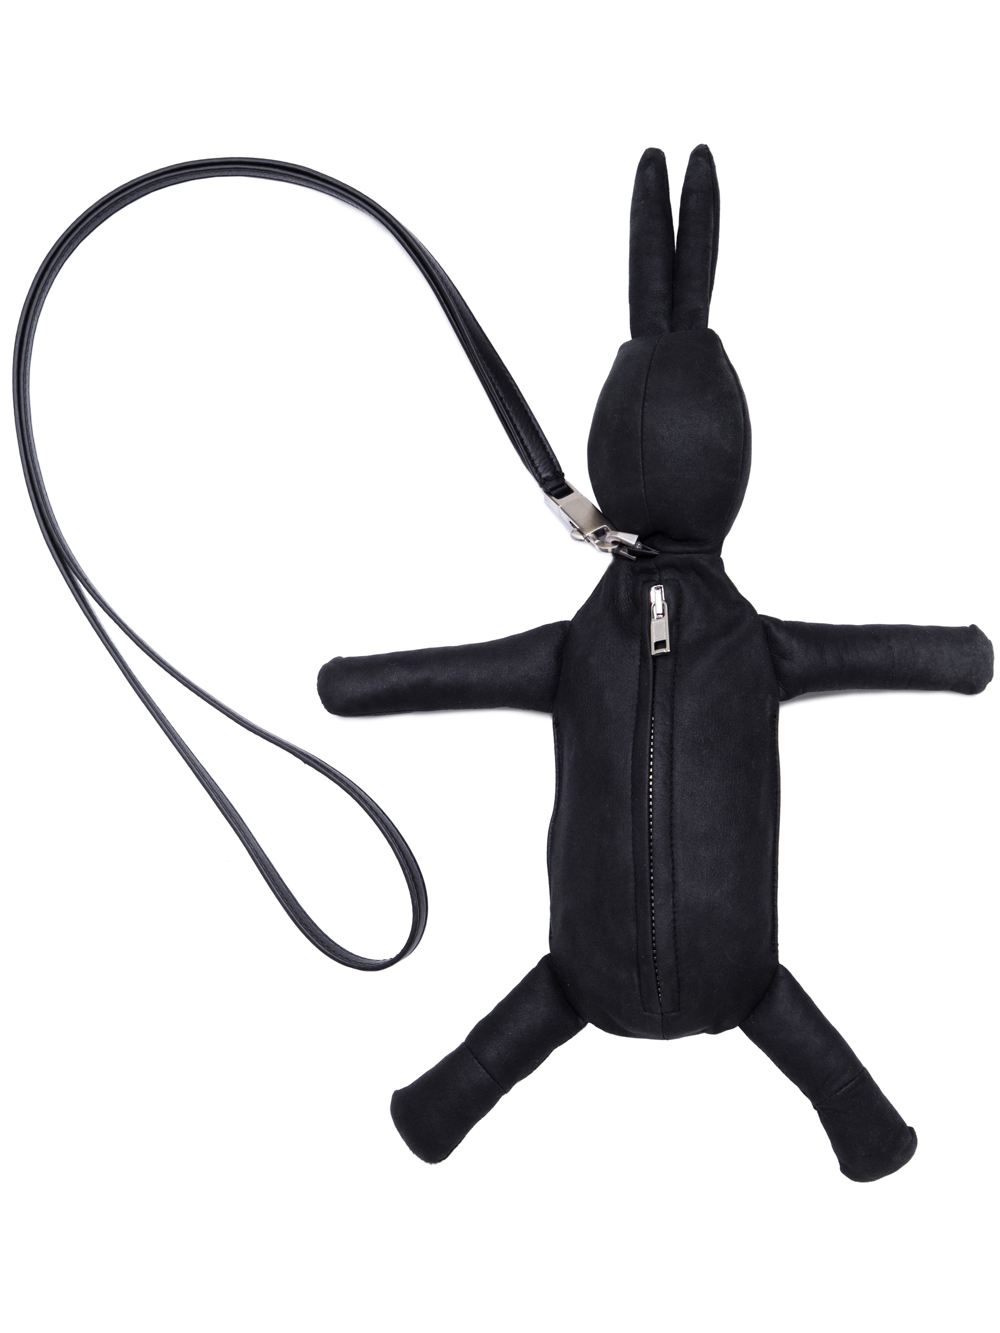 RICK OWENS HUN FAT BUNNY IN BLACK LEATHER